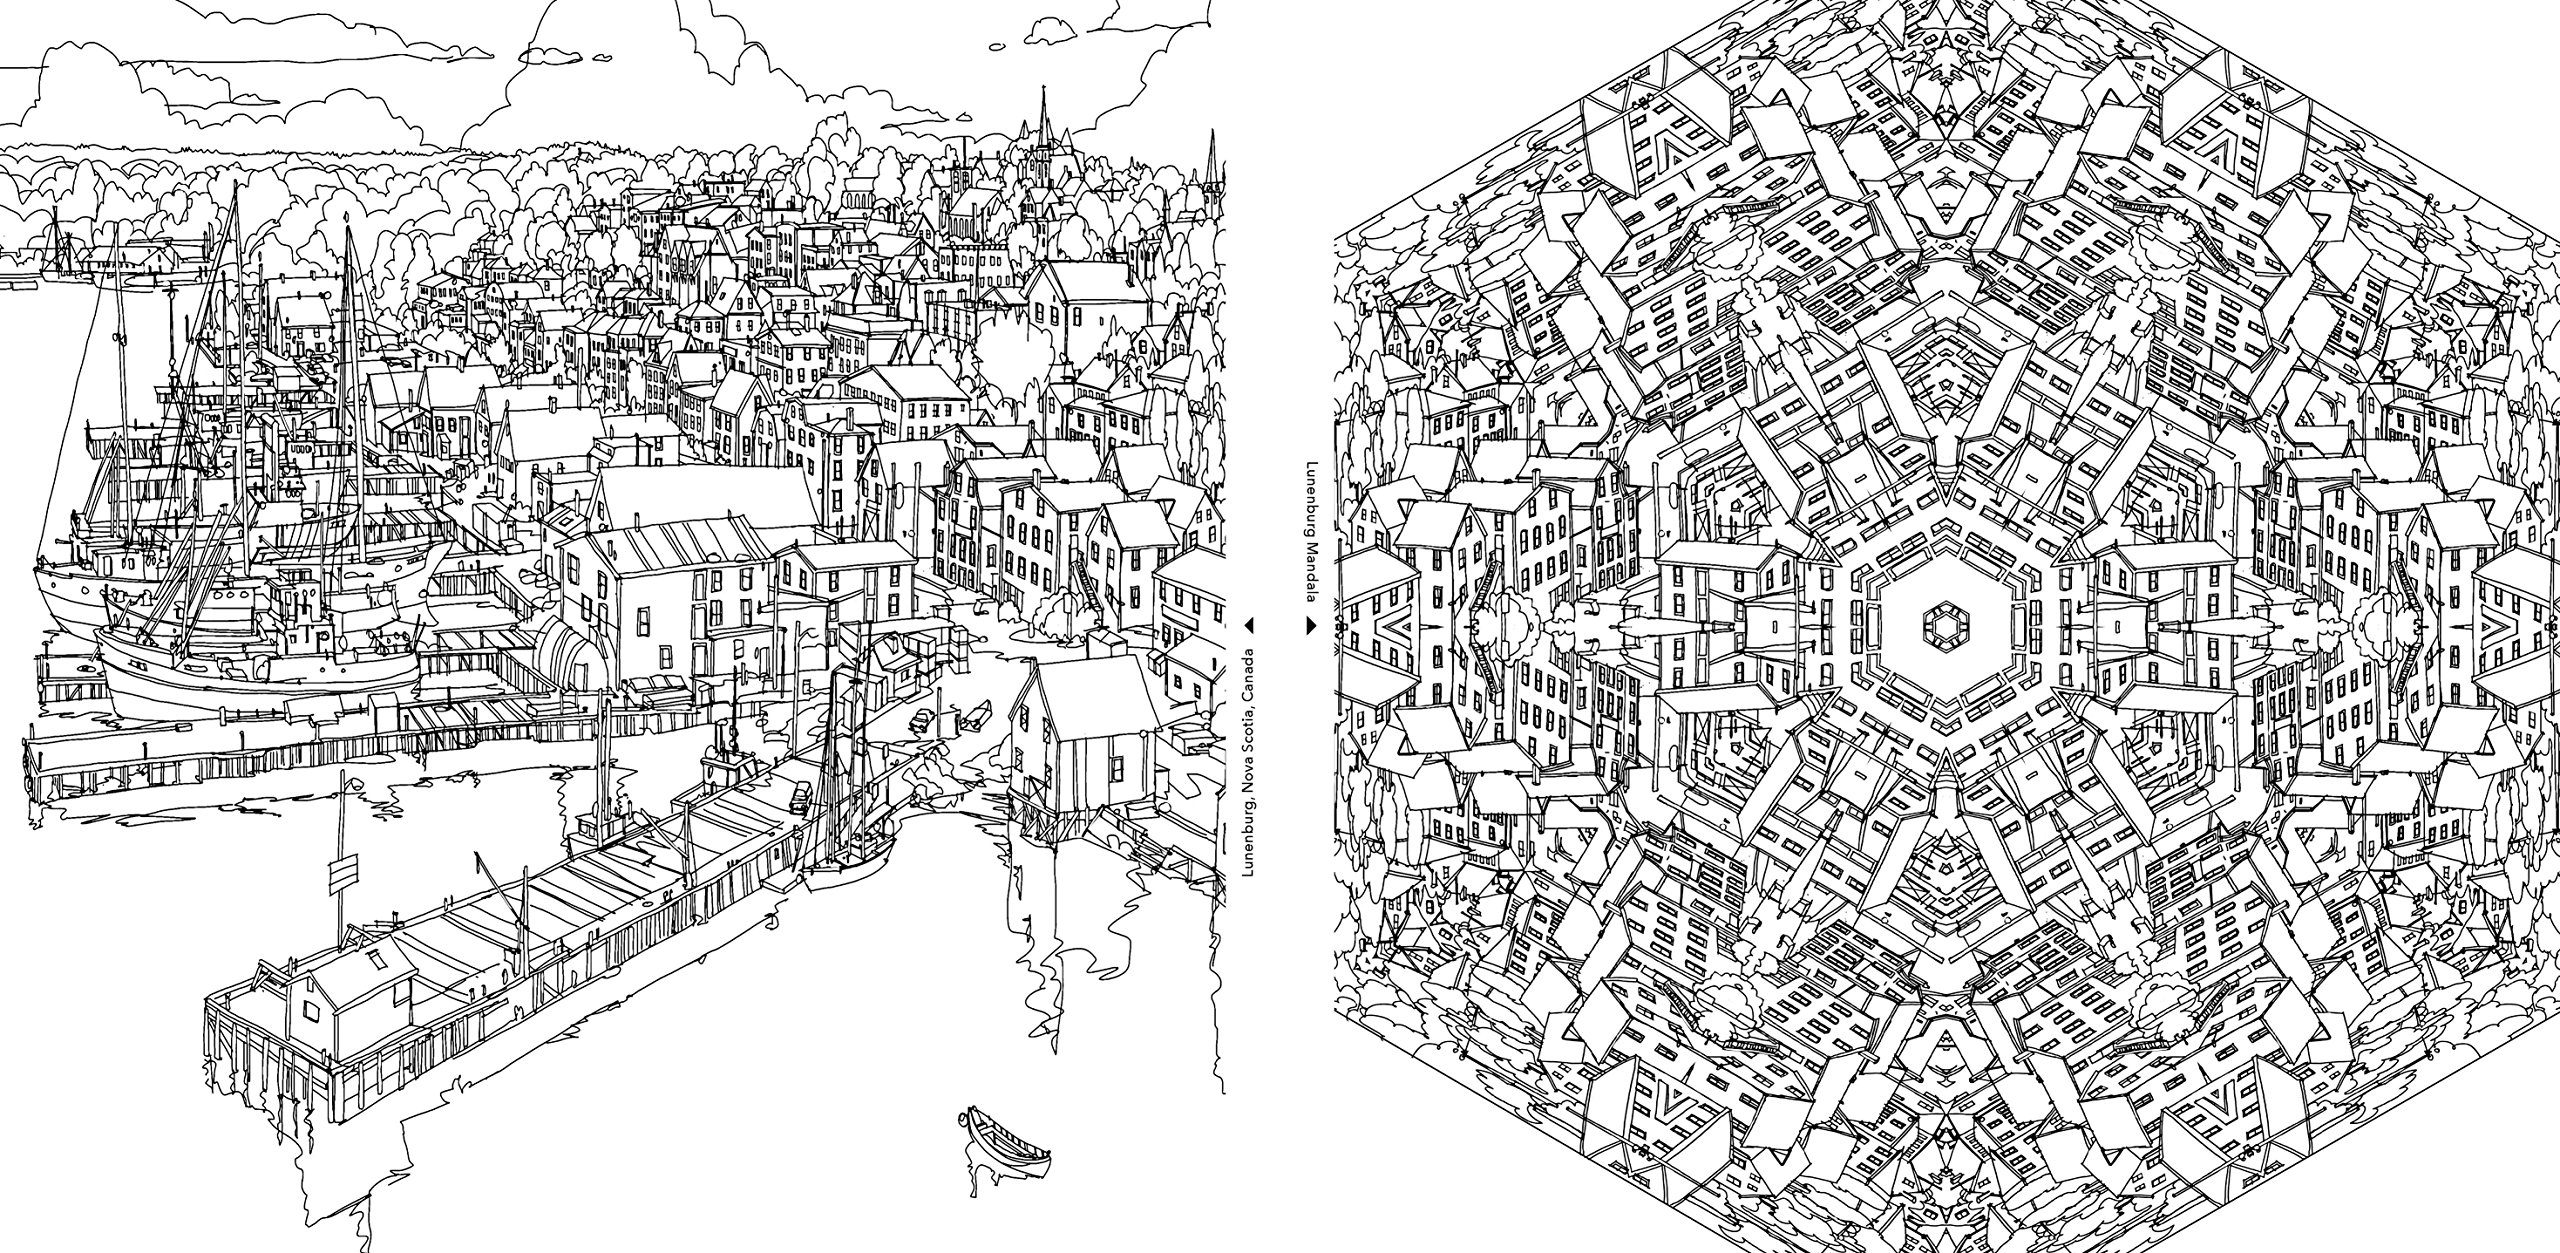 an extremely detailed coloring book for architecture lovers - Detailed Coloring Books